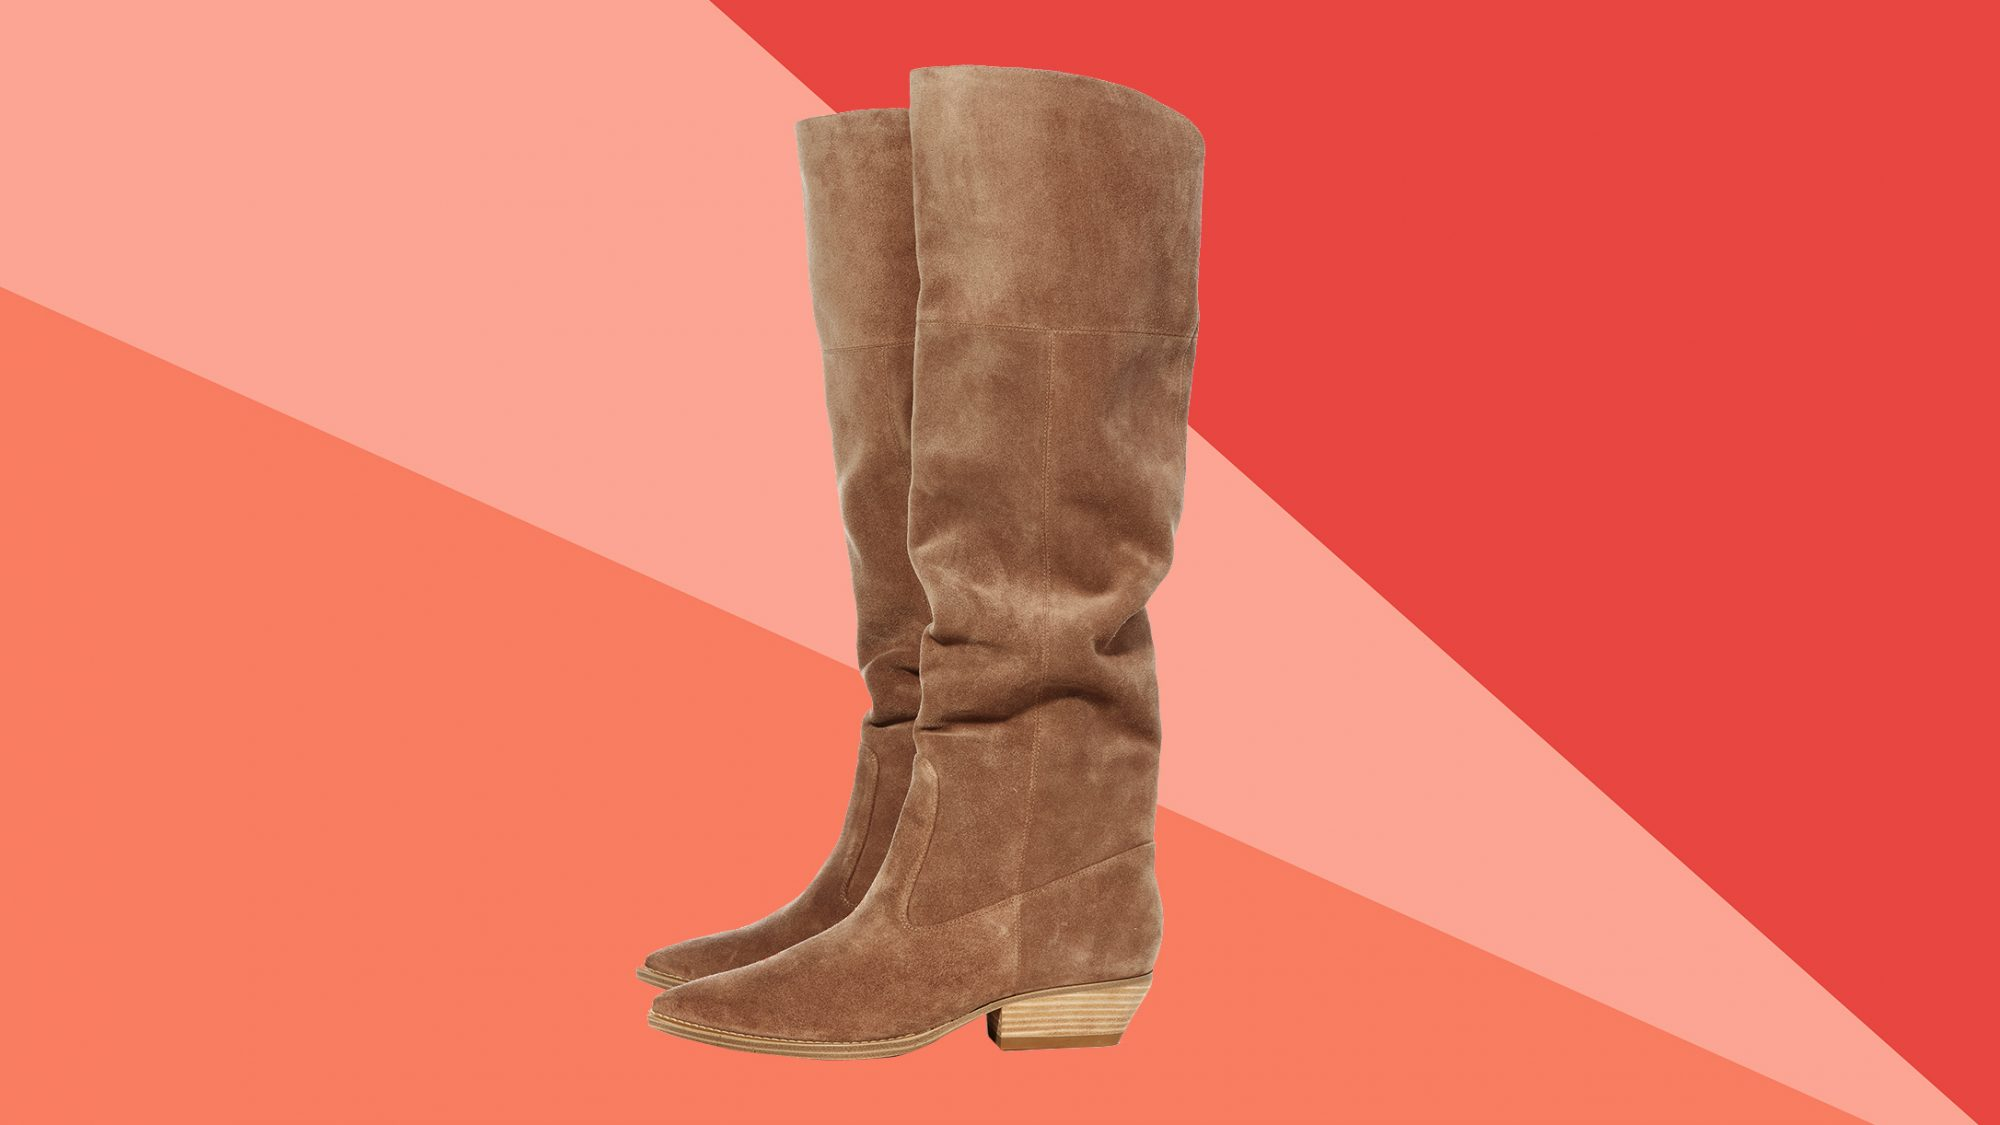 How to Clean and Care for Suede Boots